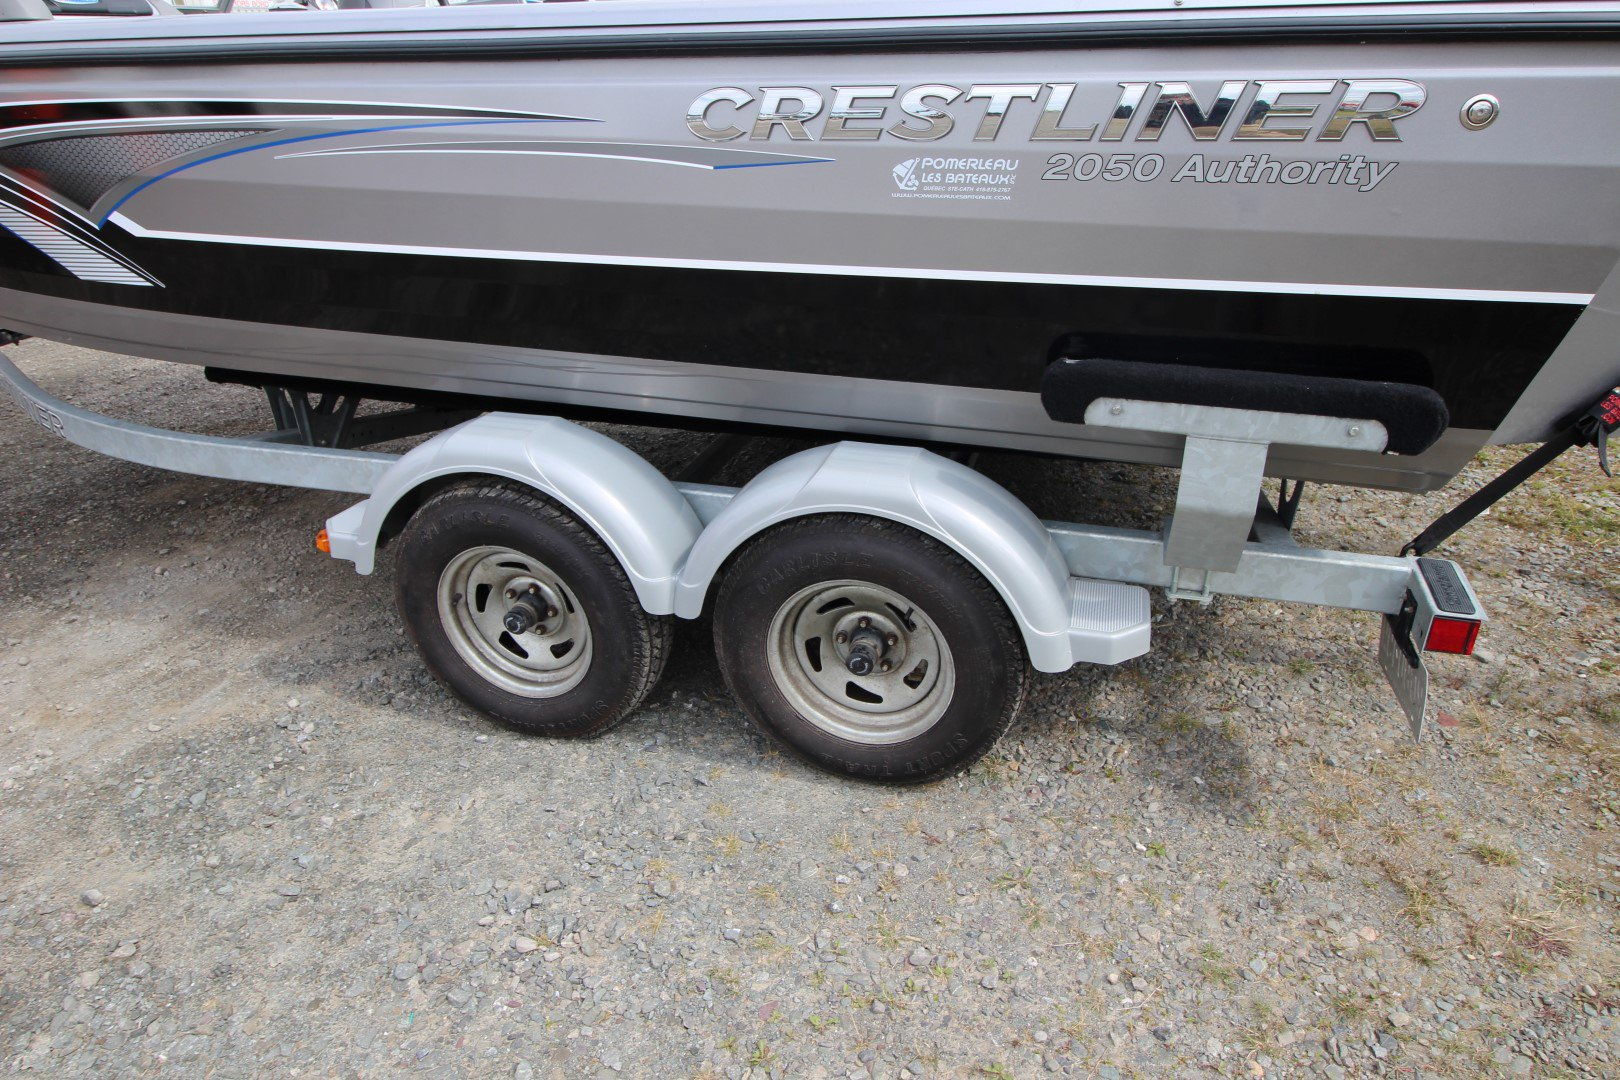 Crestliner Authority 2050 - IMG_1790